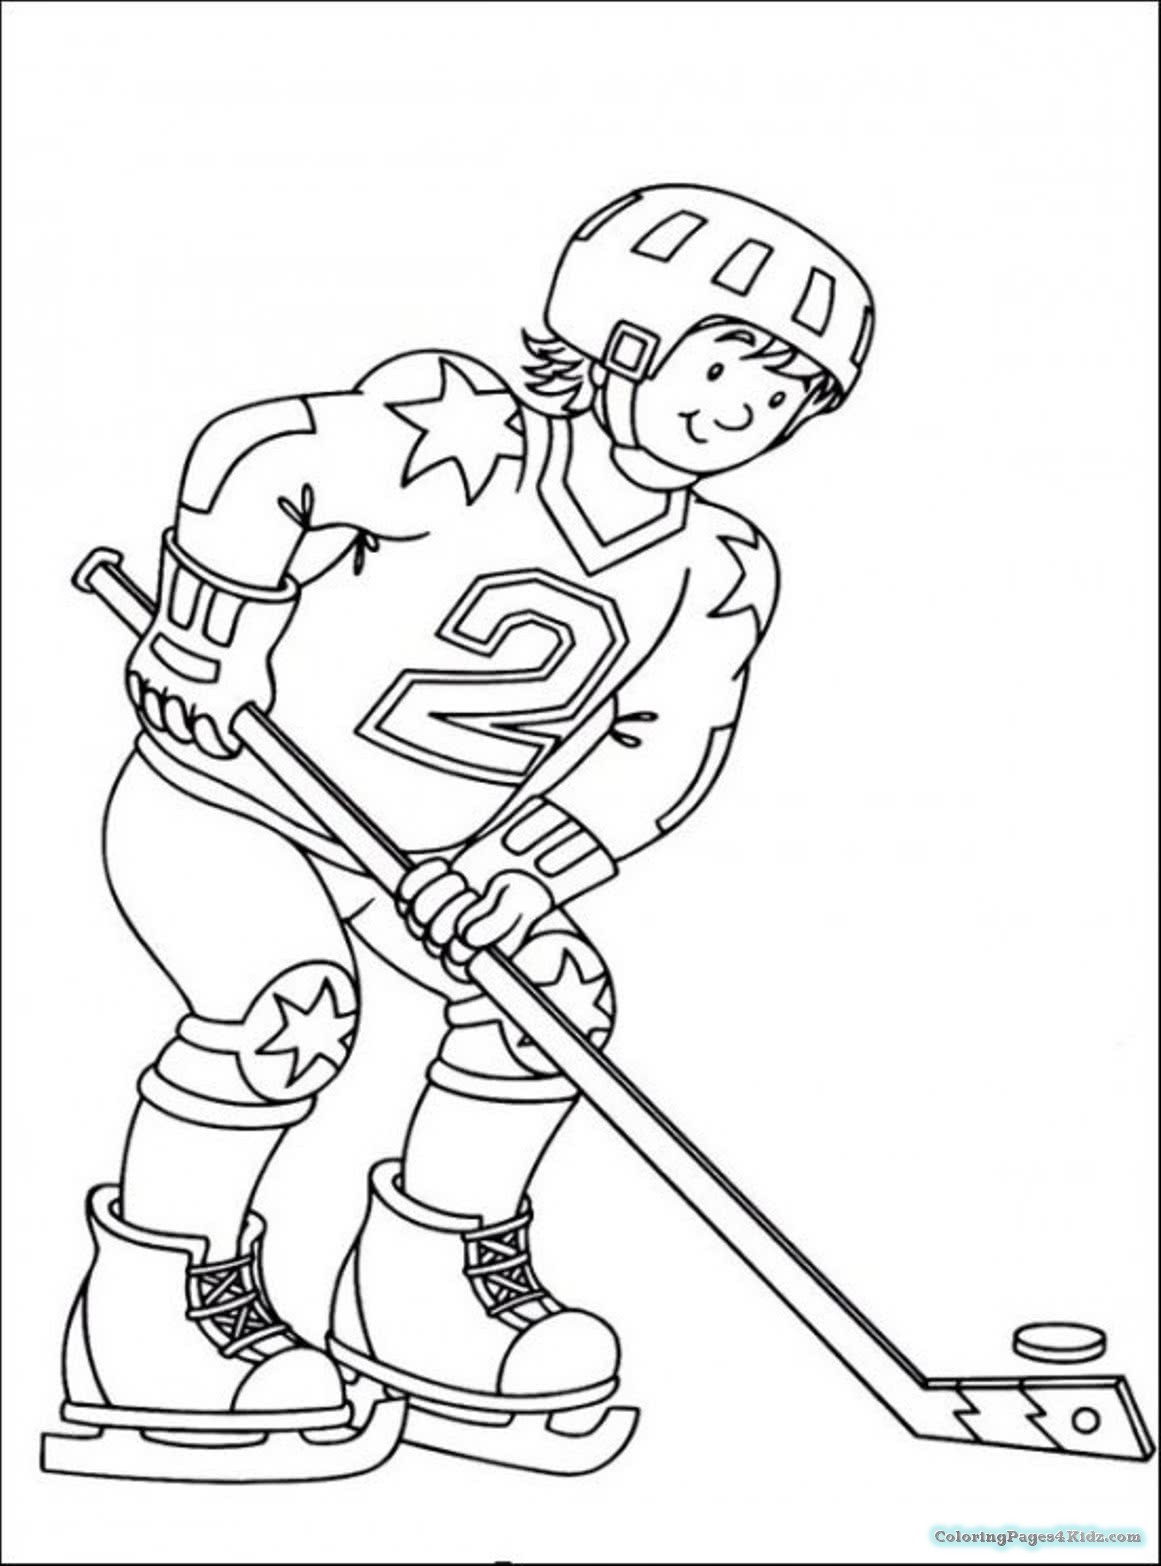 Hockey Drawing Pictures at GetDrawings.com   Free for ...